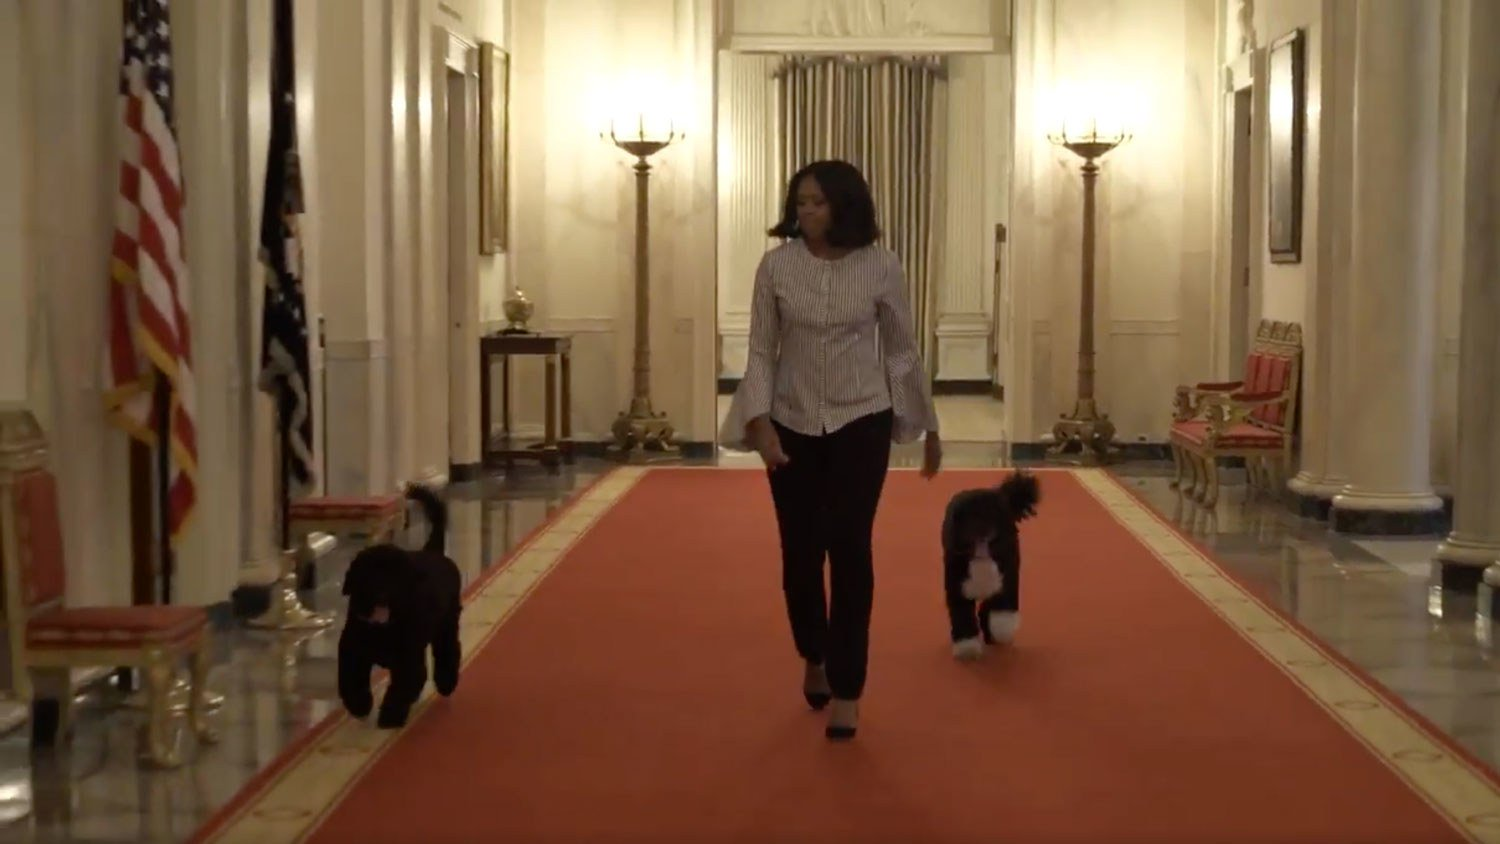 Watch Michelle Obama take her final walk through the White House, and get ready to cry: https://t.co/xvs5480OUz https://t.co/9rj5PRZHBN